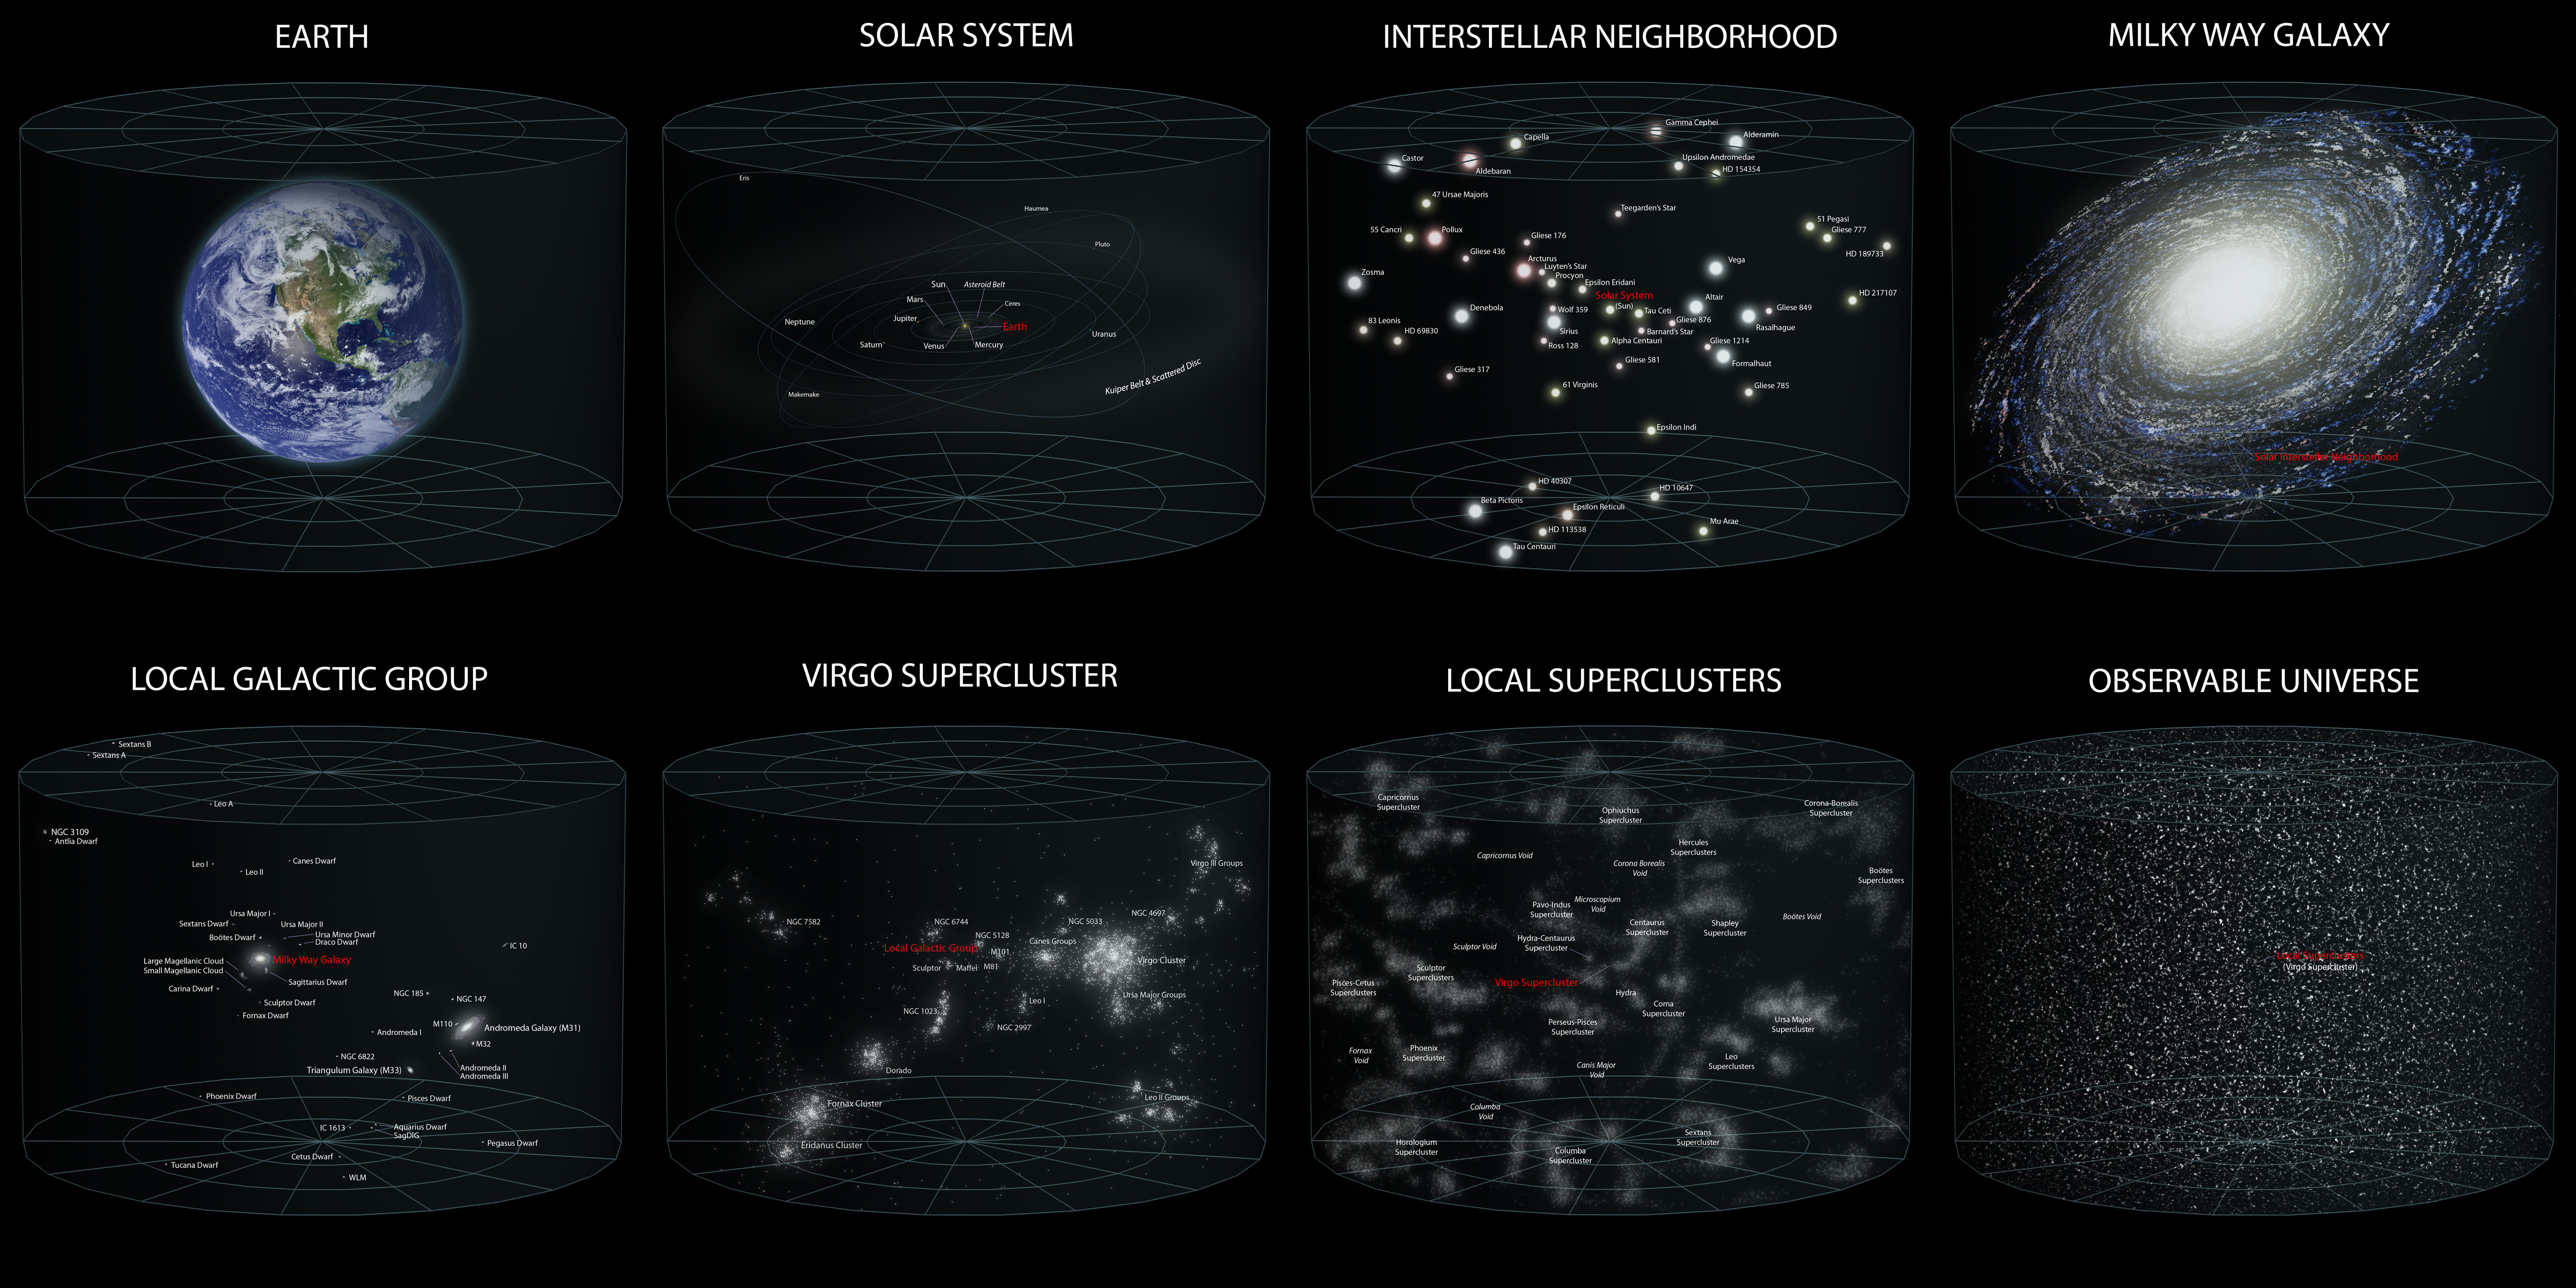 Andrew Z. Colvin - Earth's Location in the Universe - Source : https://commons.wikimedia.org/wiki/File:Earth%27s_Location_in_the_Universe_SMALLER_(JPEG).jpg